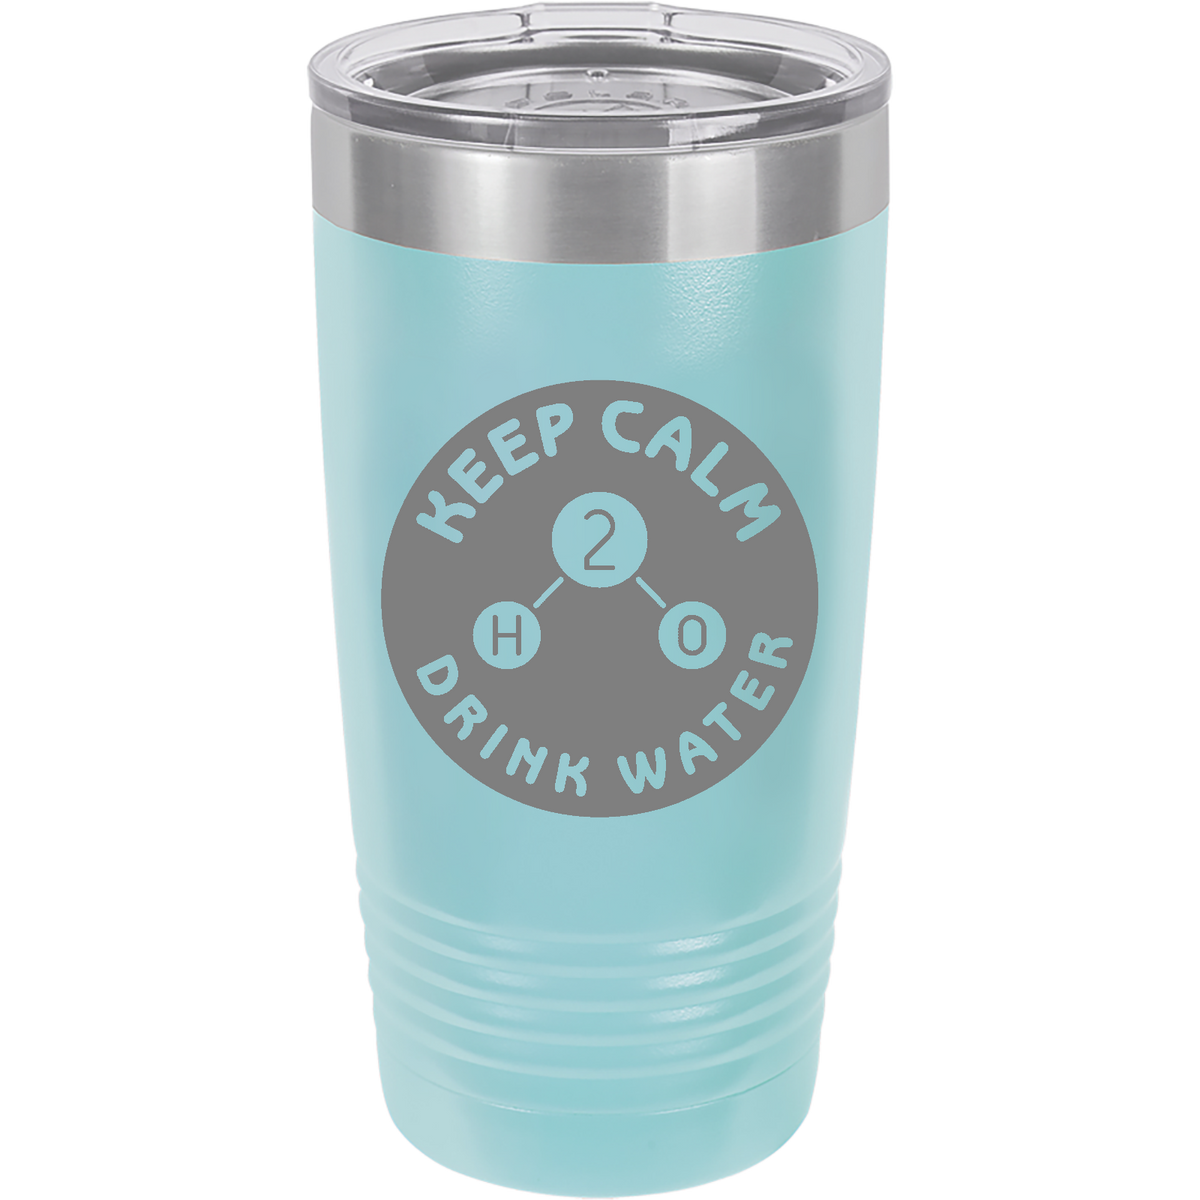 Keep Calm and Drink WATER - 20oz. Engraved Tumbler with Clear Lid